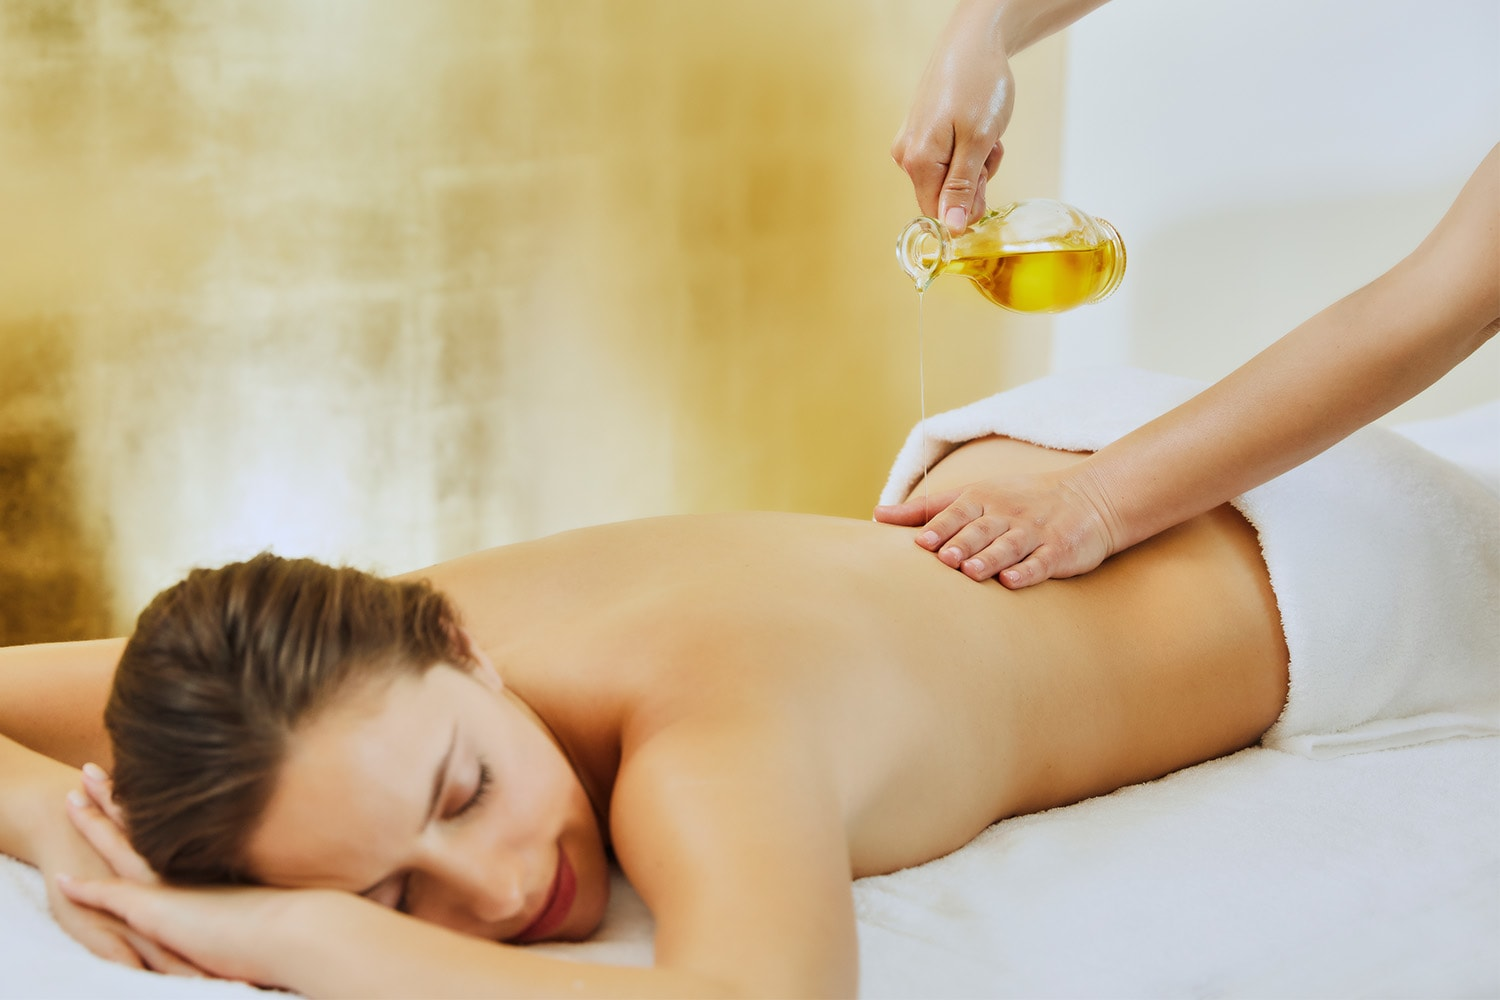 A woman is having an ayurveda massage